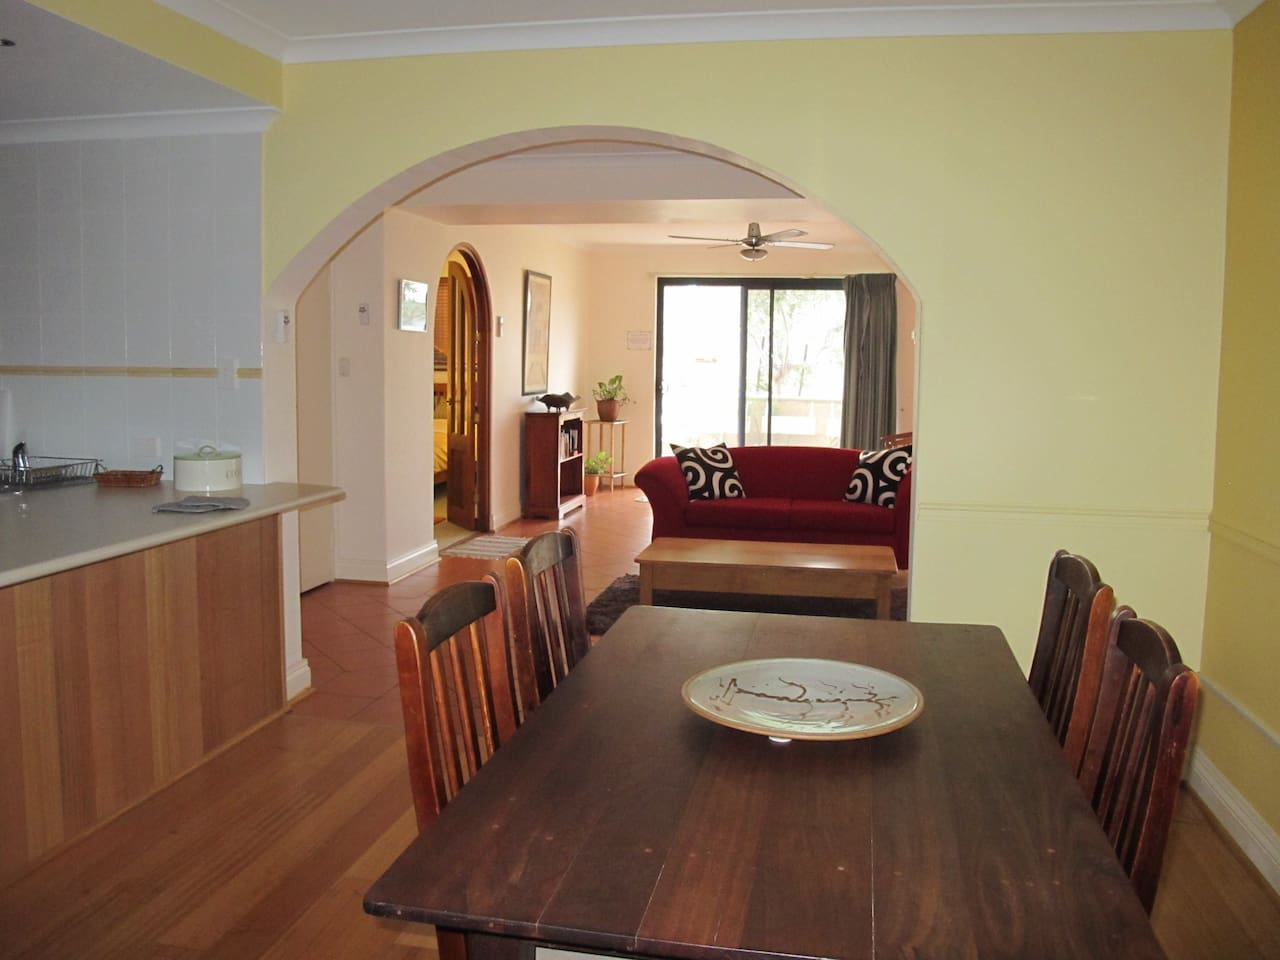 Dining room and living